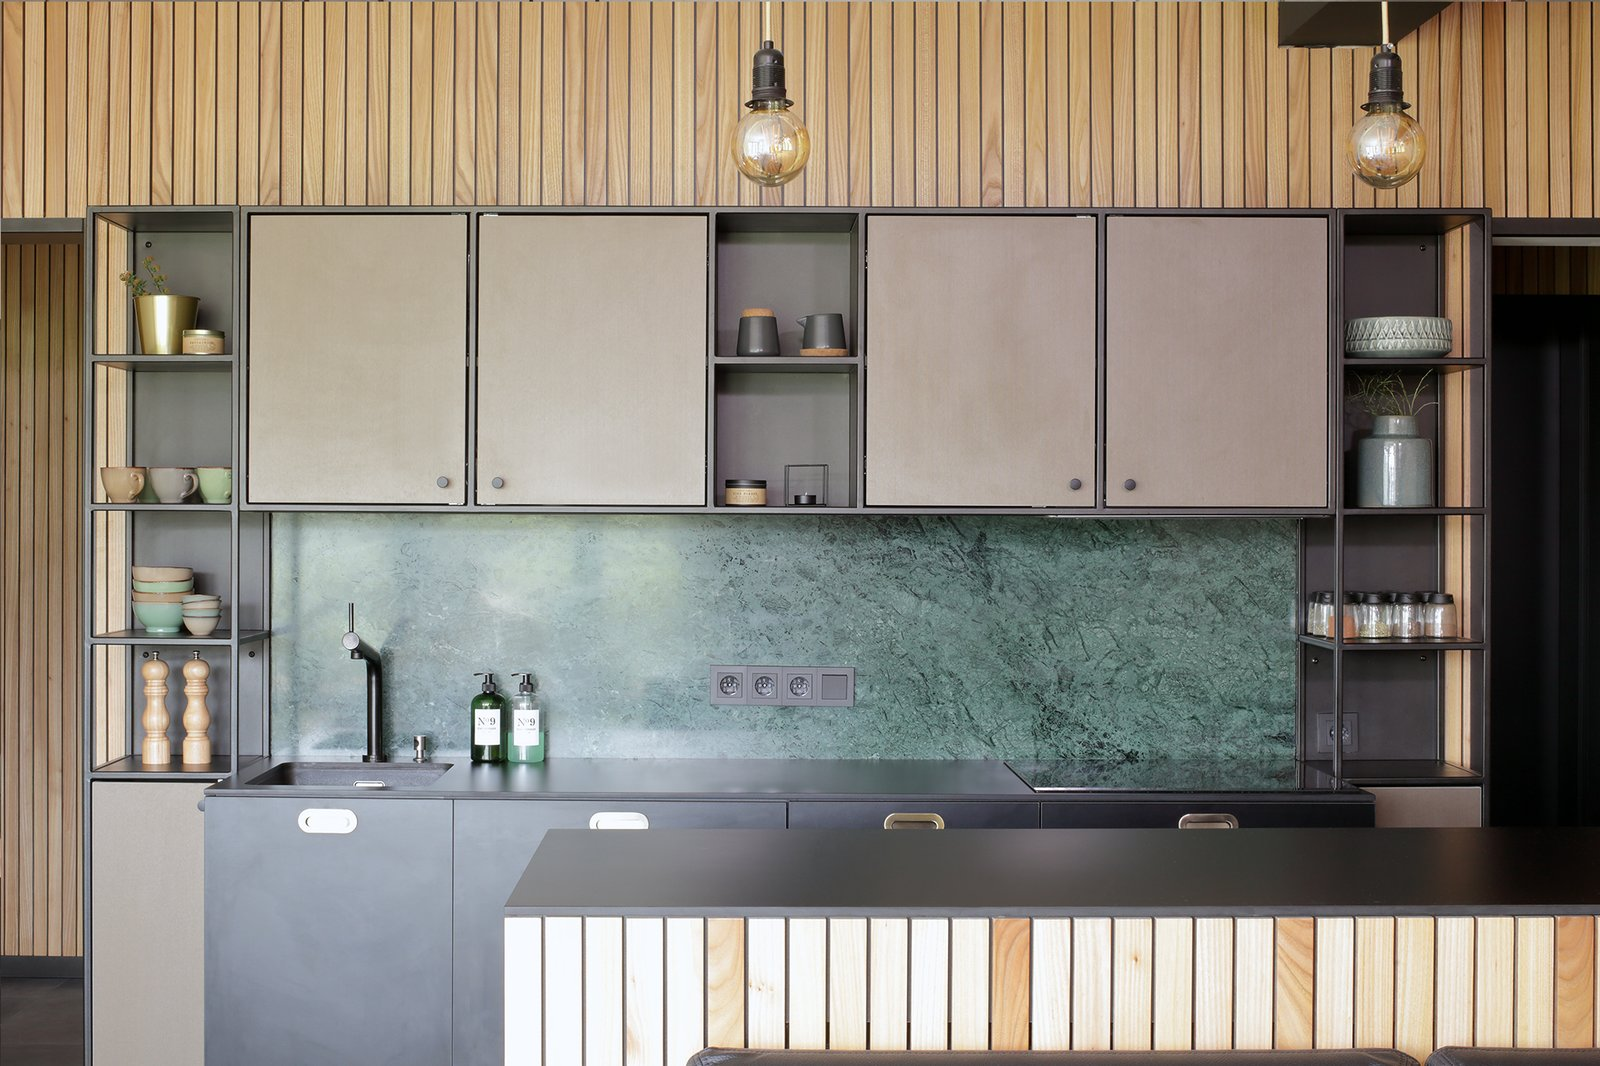 Kitchen, Metal Cabinet, Ceramic Tile Floor, Laminate Counter, and Marble Backsplashe subtle  metal construction was designed for kitchen display and cabinets , backsplash is green marble Verde Guatemala   Mountain Apartment in Ore Mountain, Czech Republic by Martina Schultes www.martinaschultes.com